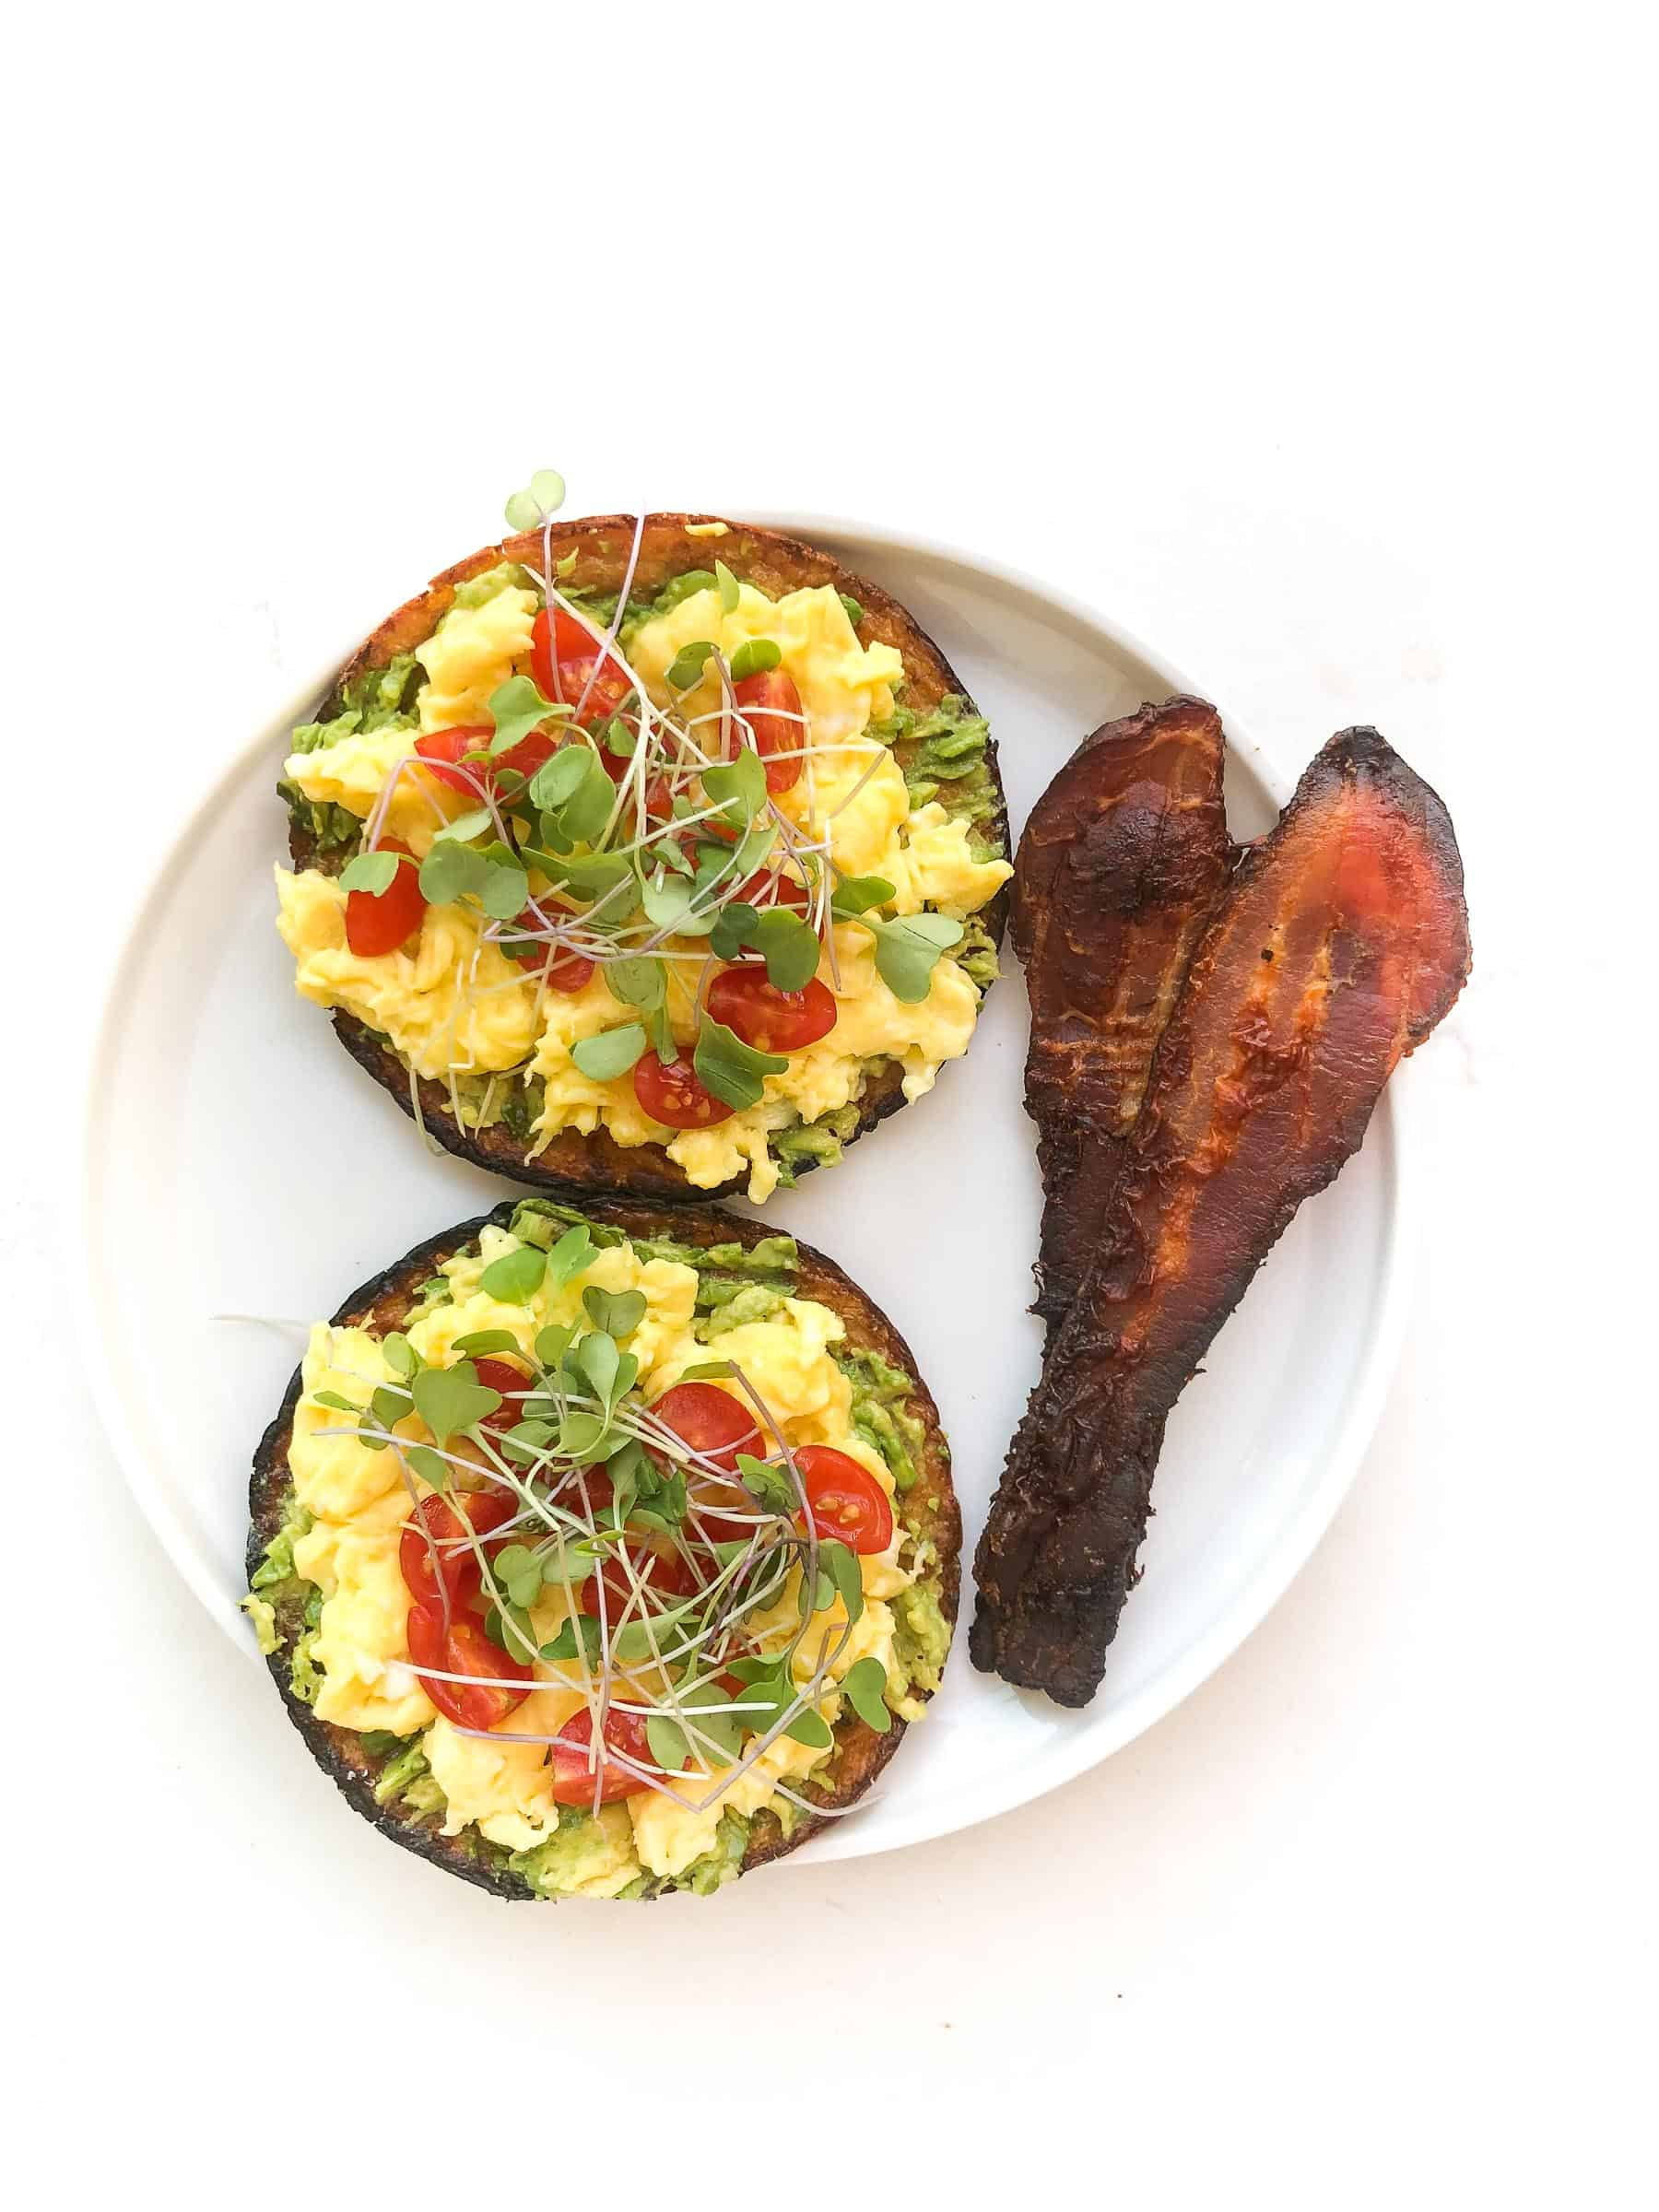 keto avocado toast topped with egg, tomatoes, microgreens and bacon on a white plate and background